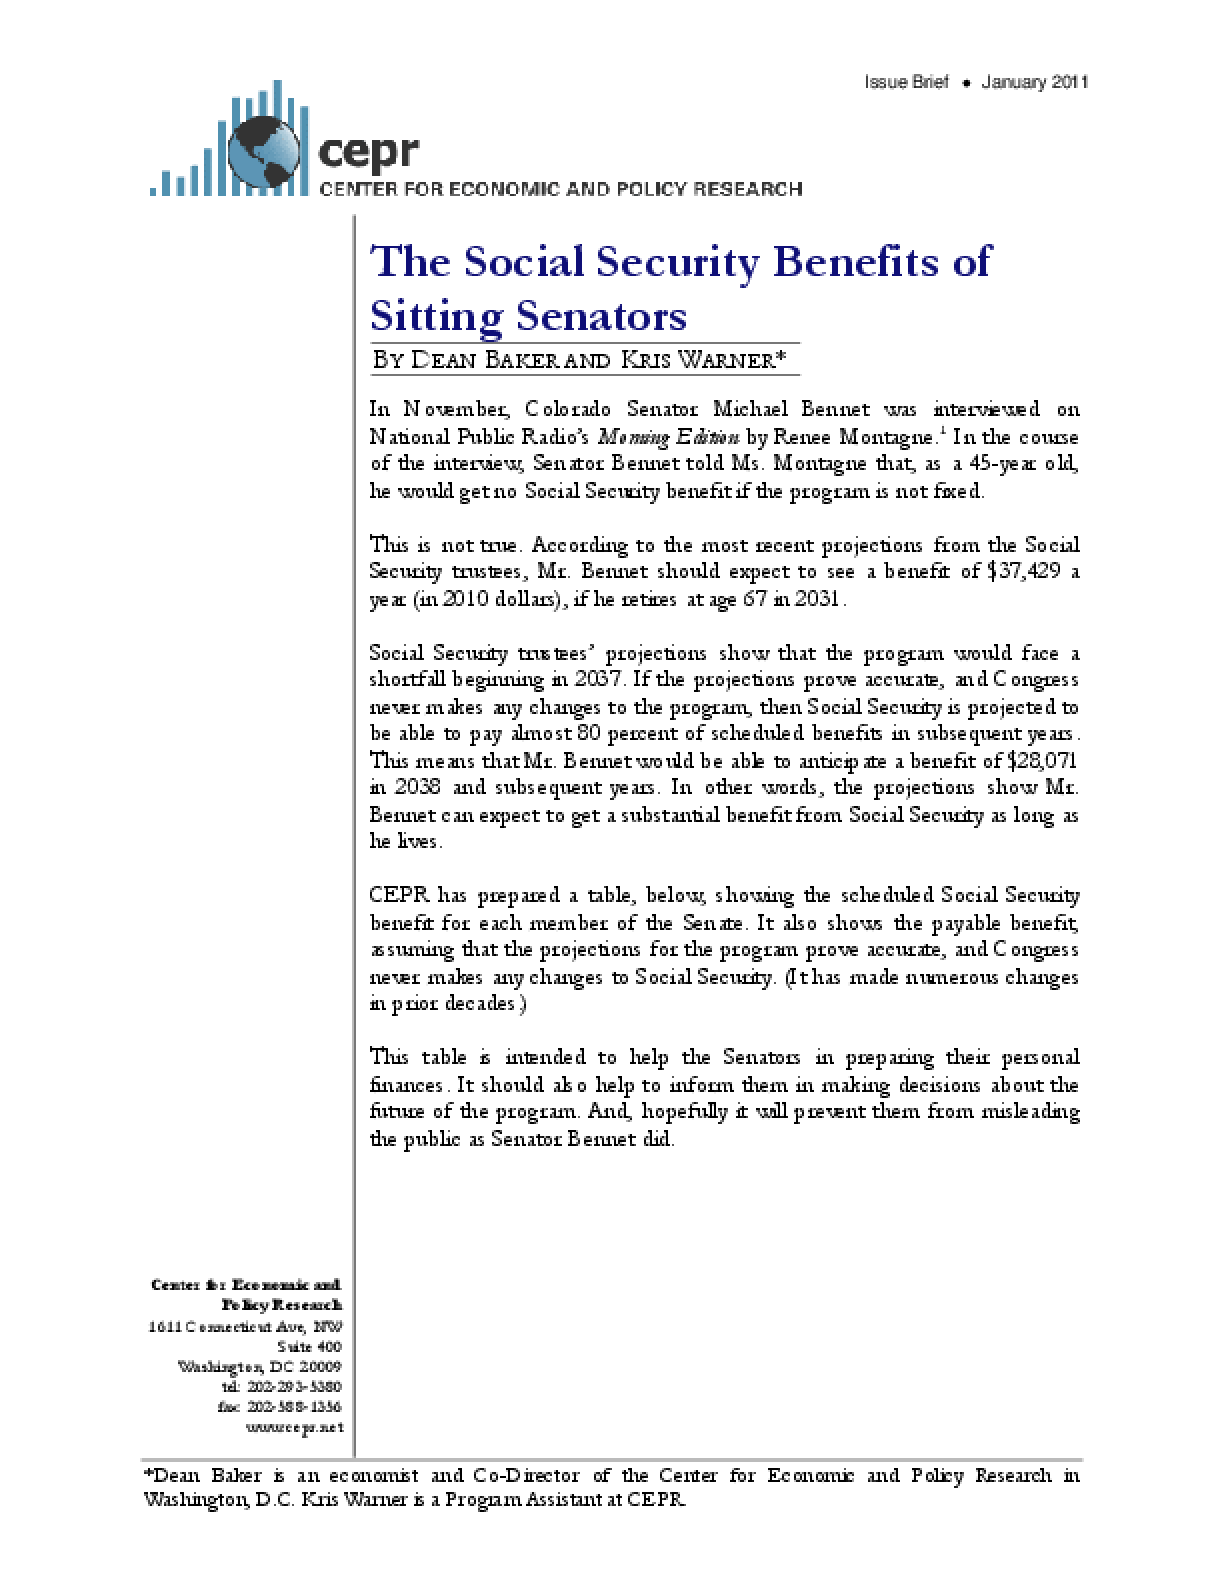 The Social Security Benefits of Sitting Senators